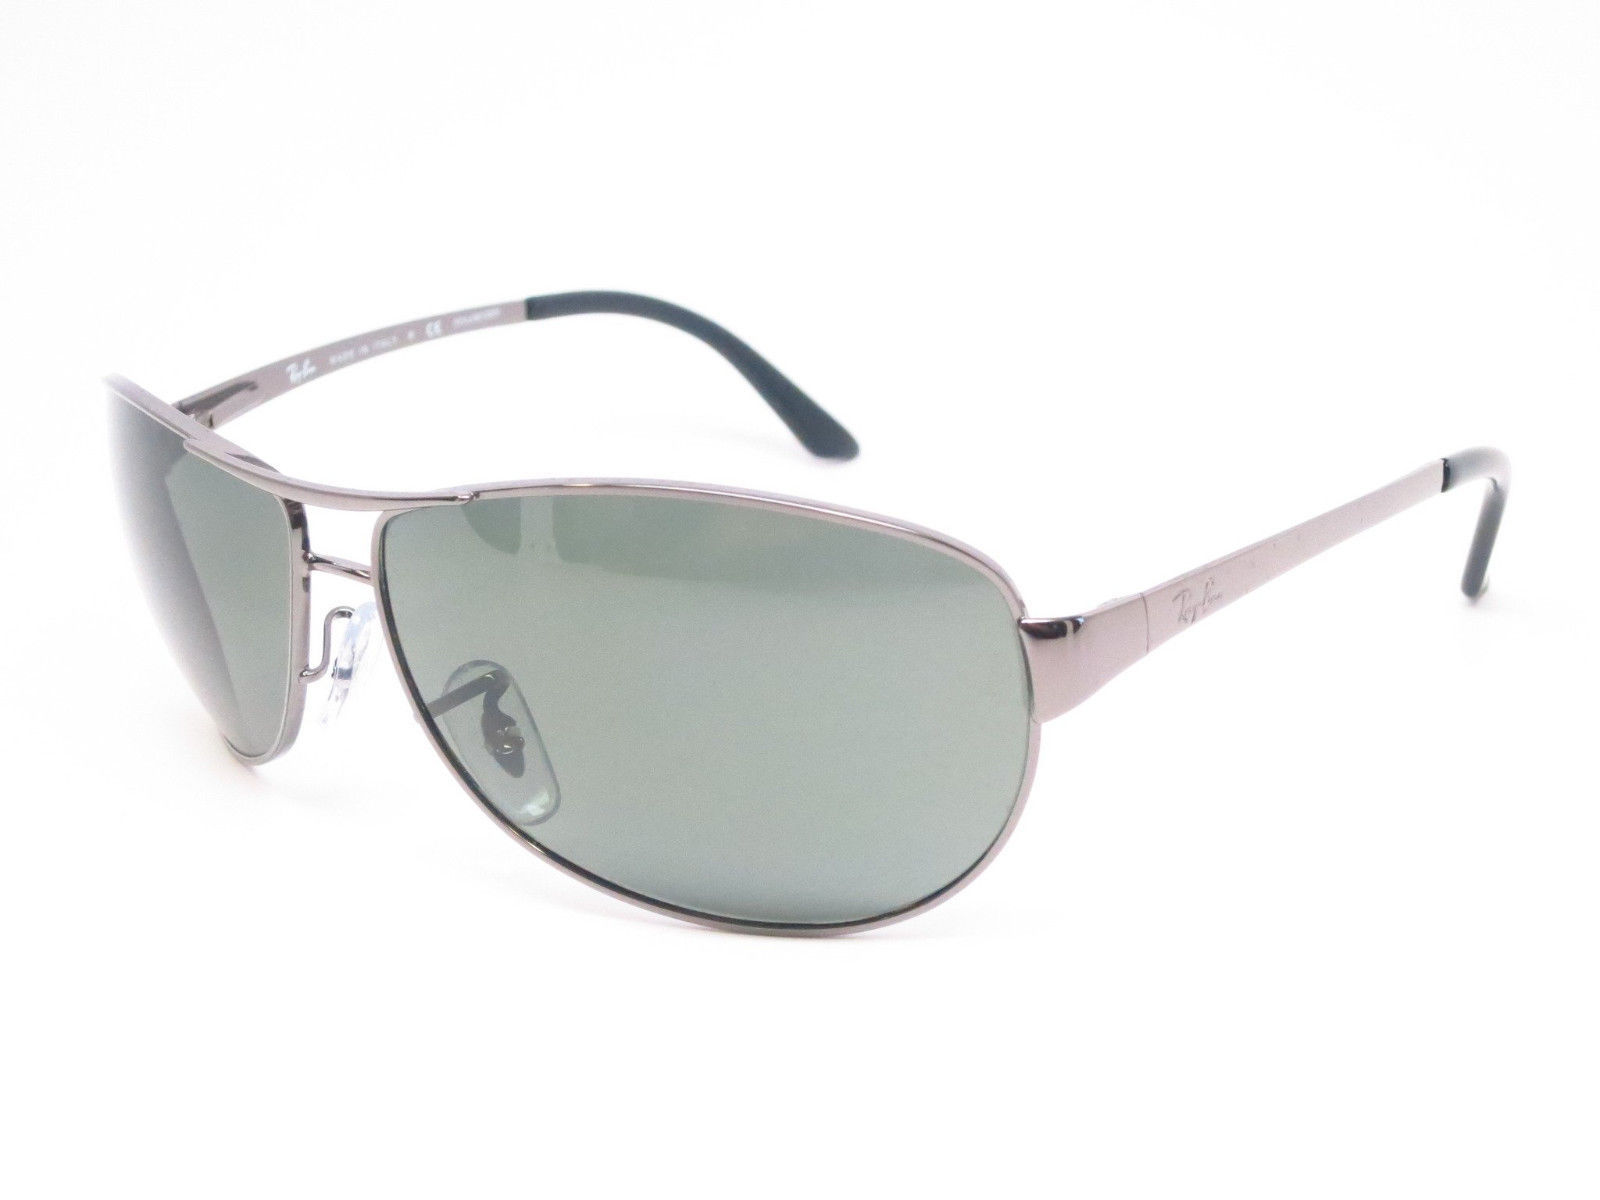 Primary image for Neu Ray Ban Warrior RB3342 004 Rotguss mit / G-15 Grüne Linse 63mm